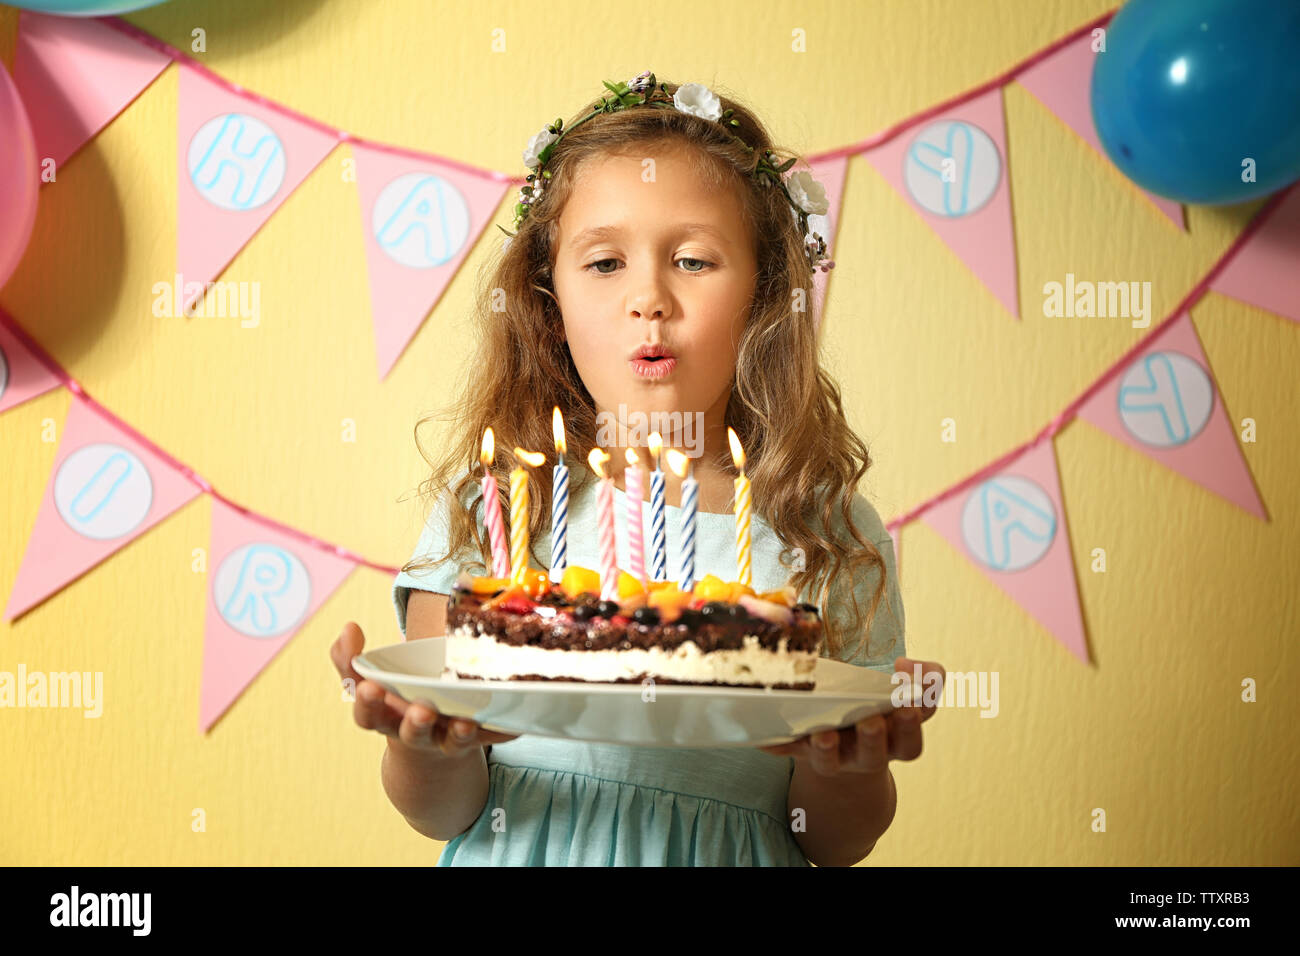 Amazing Cute Little Girl Blowing Out Candles On Birthday Cake At Home Funny Birthday Cards Online Sheoxdamsfinfo